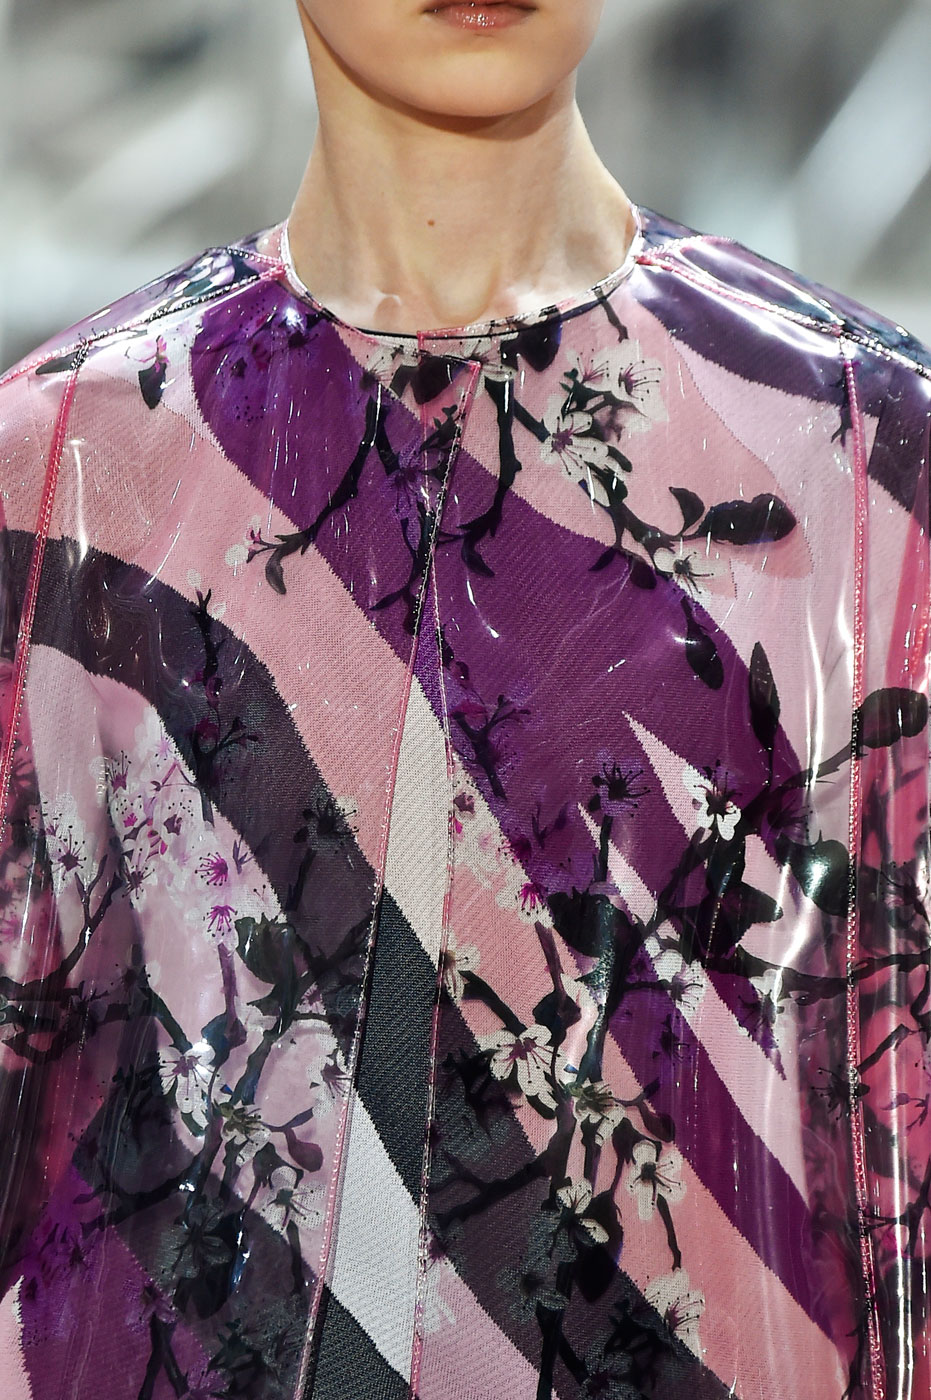 Christian-Dior-fashion-runway-show-close-ups-haute-couture-paris-spring-summer-2015-the-impression-106